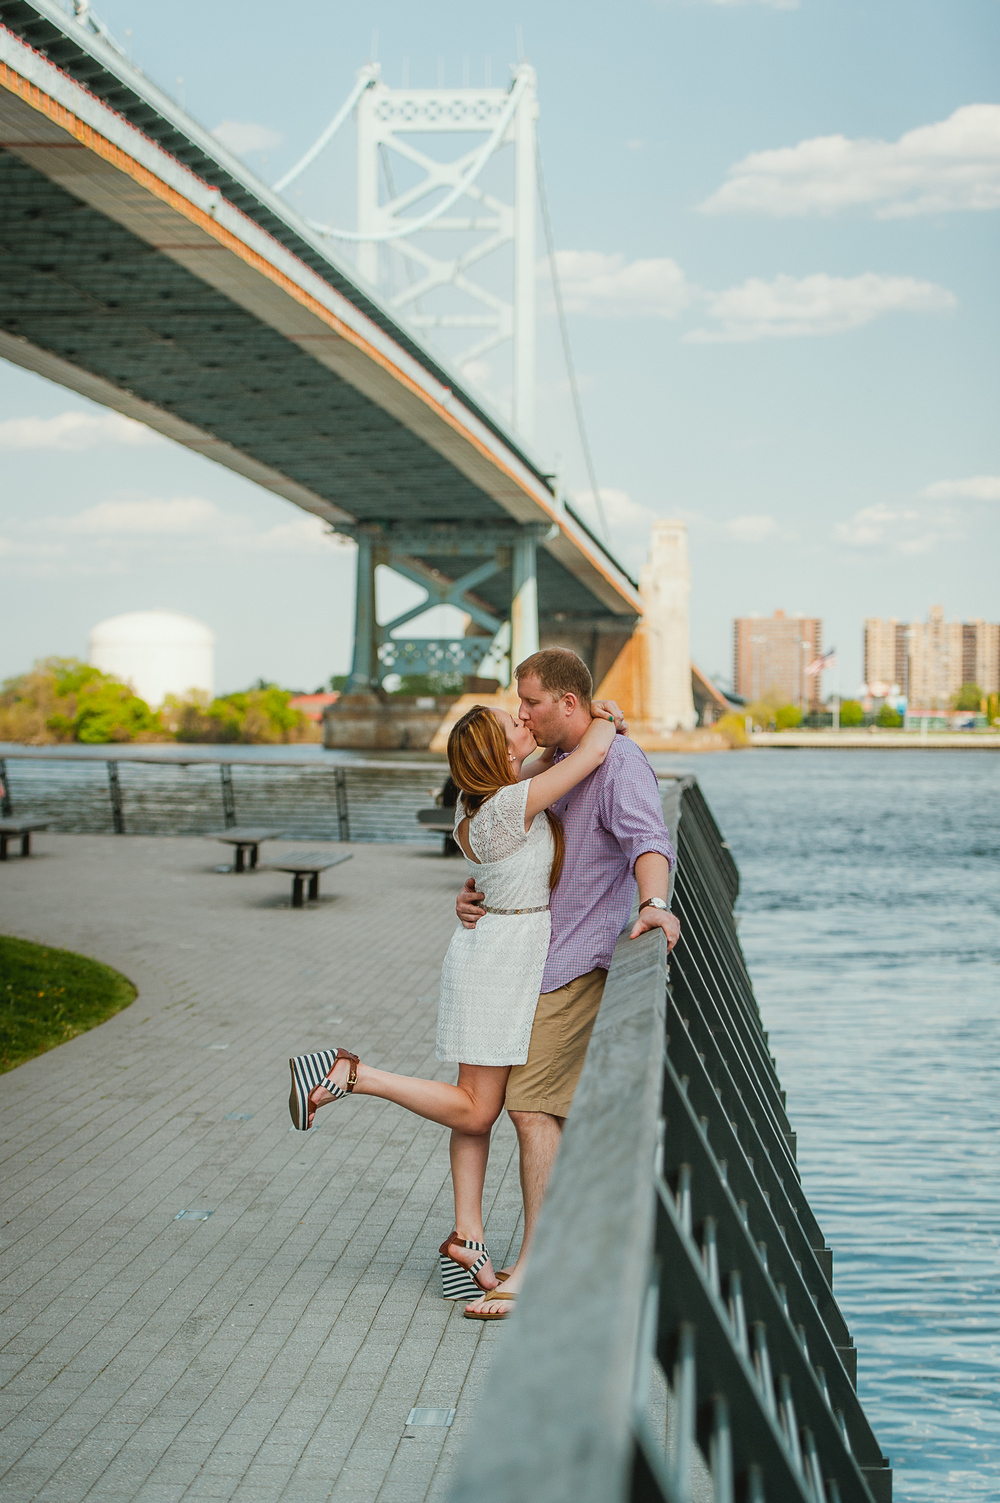 Kirstin_Mike_Engagement-19